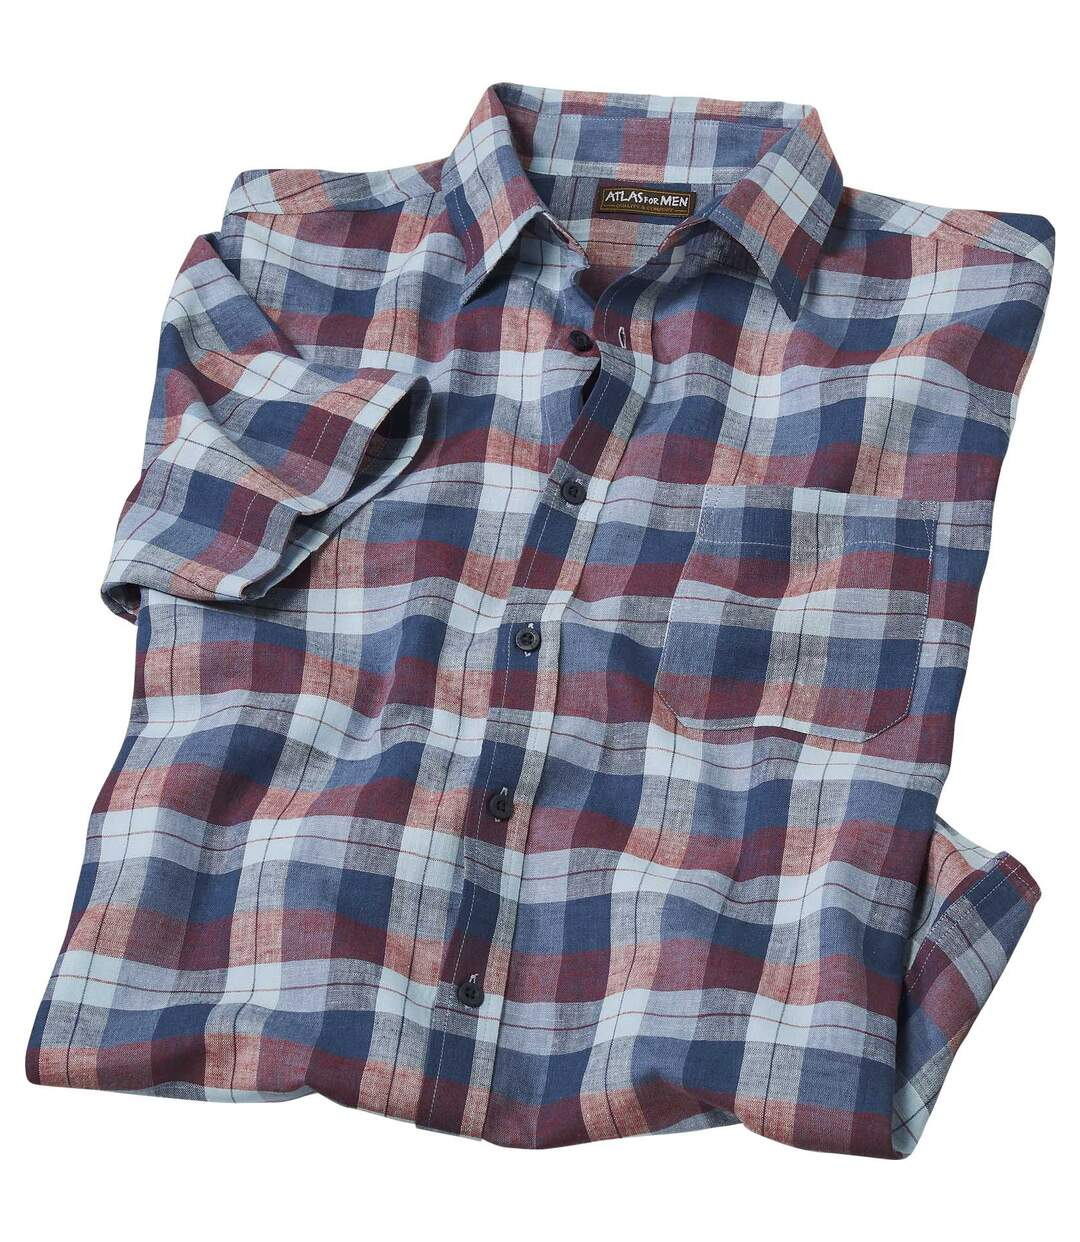 Men's Blue and Red Checked Shirt